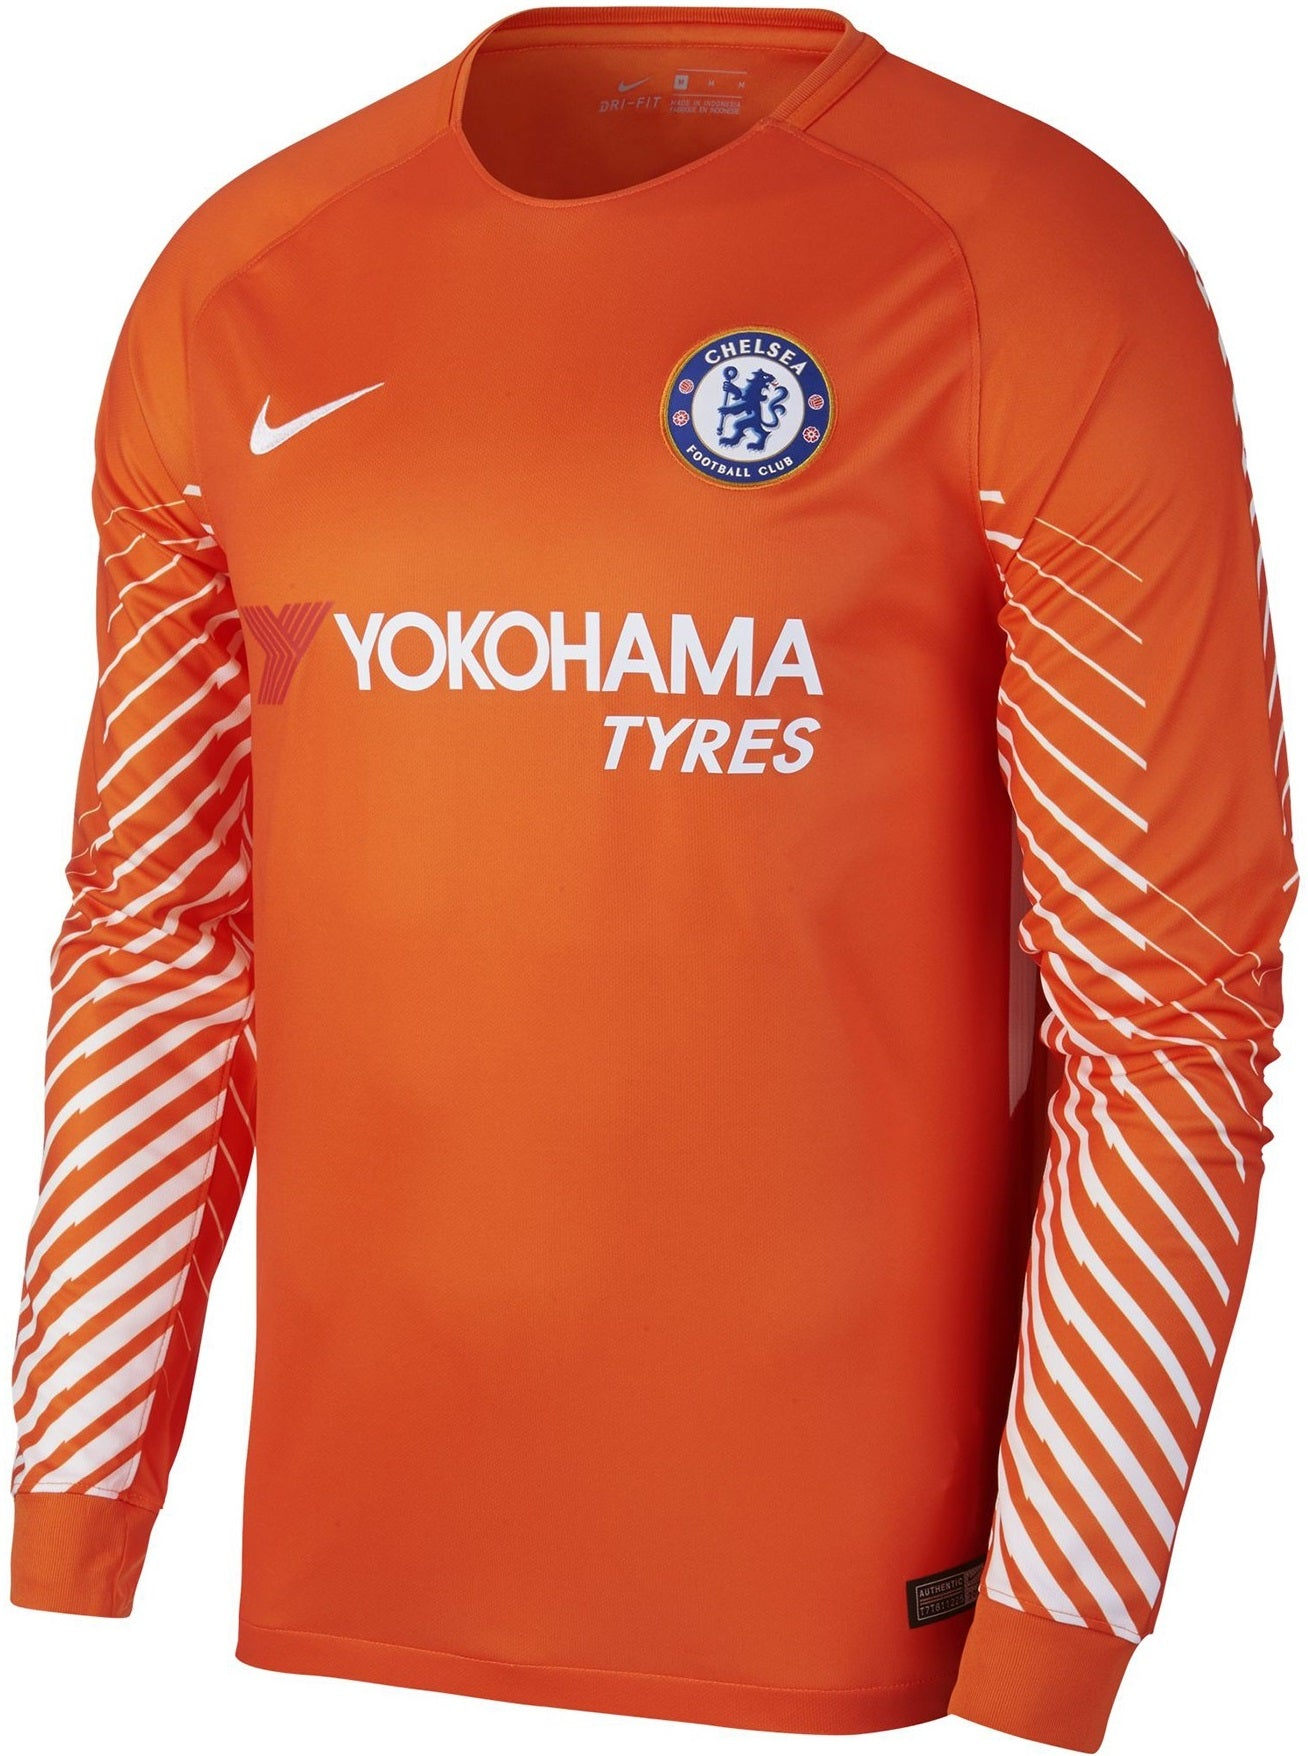 Chelsea Goalkeeper Jersey 2017/18 - Long Sleeves 905510-816